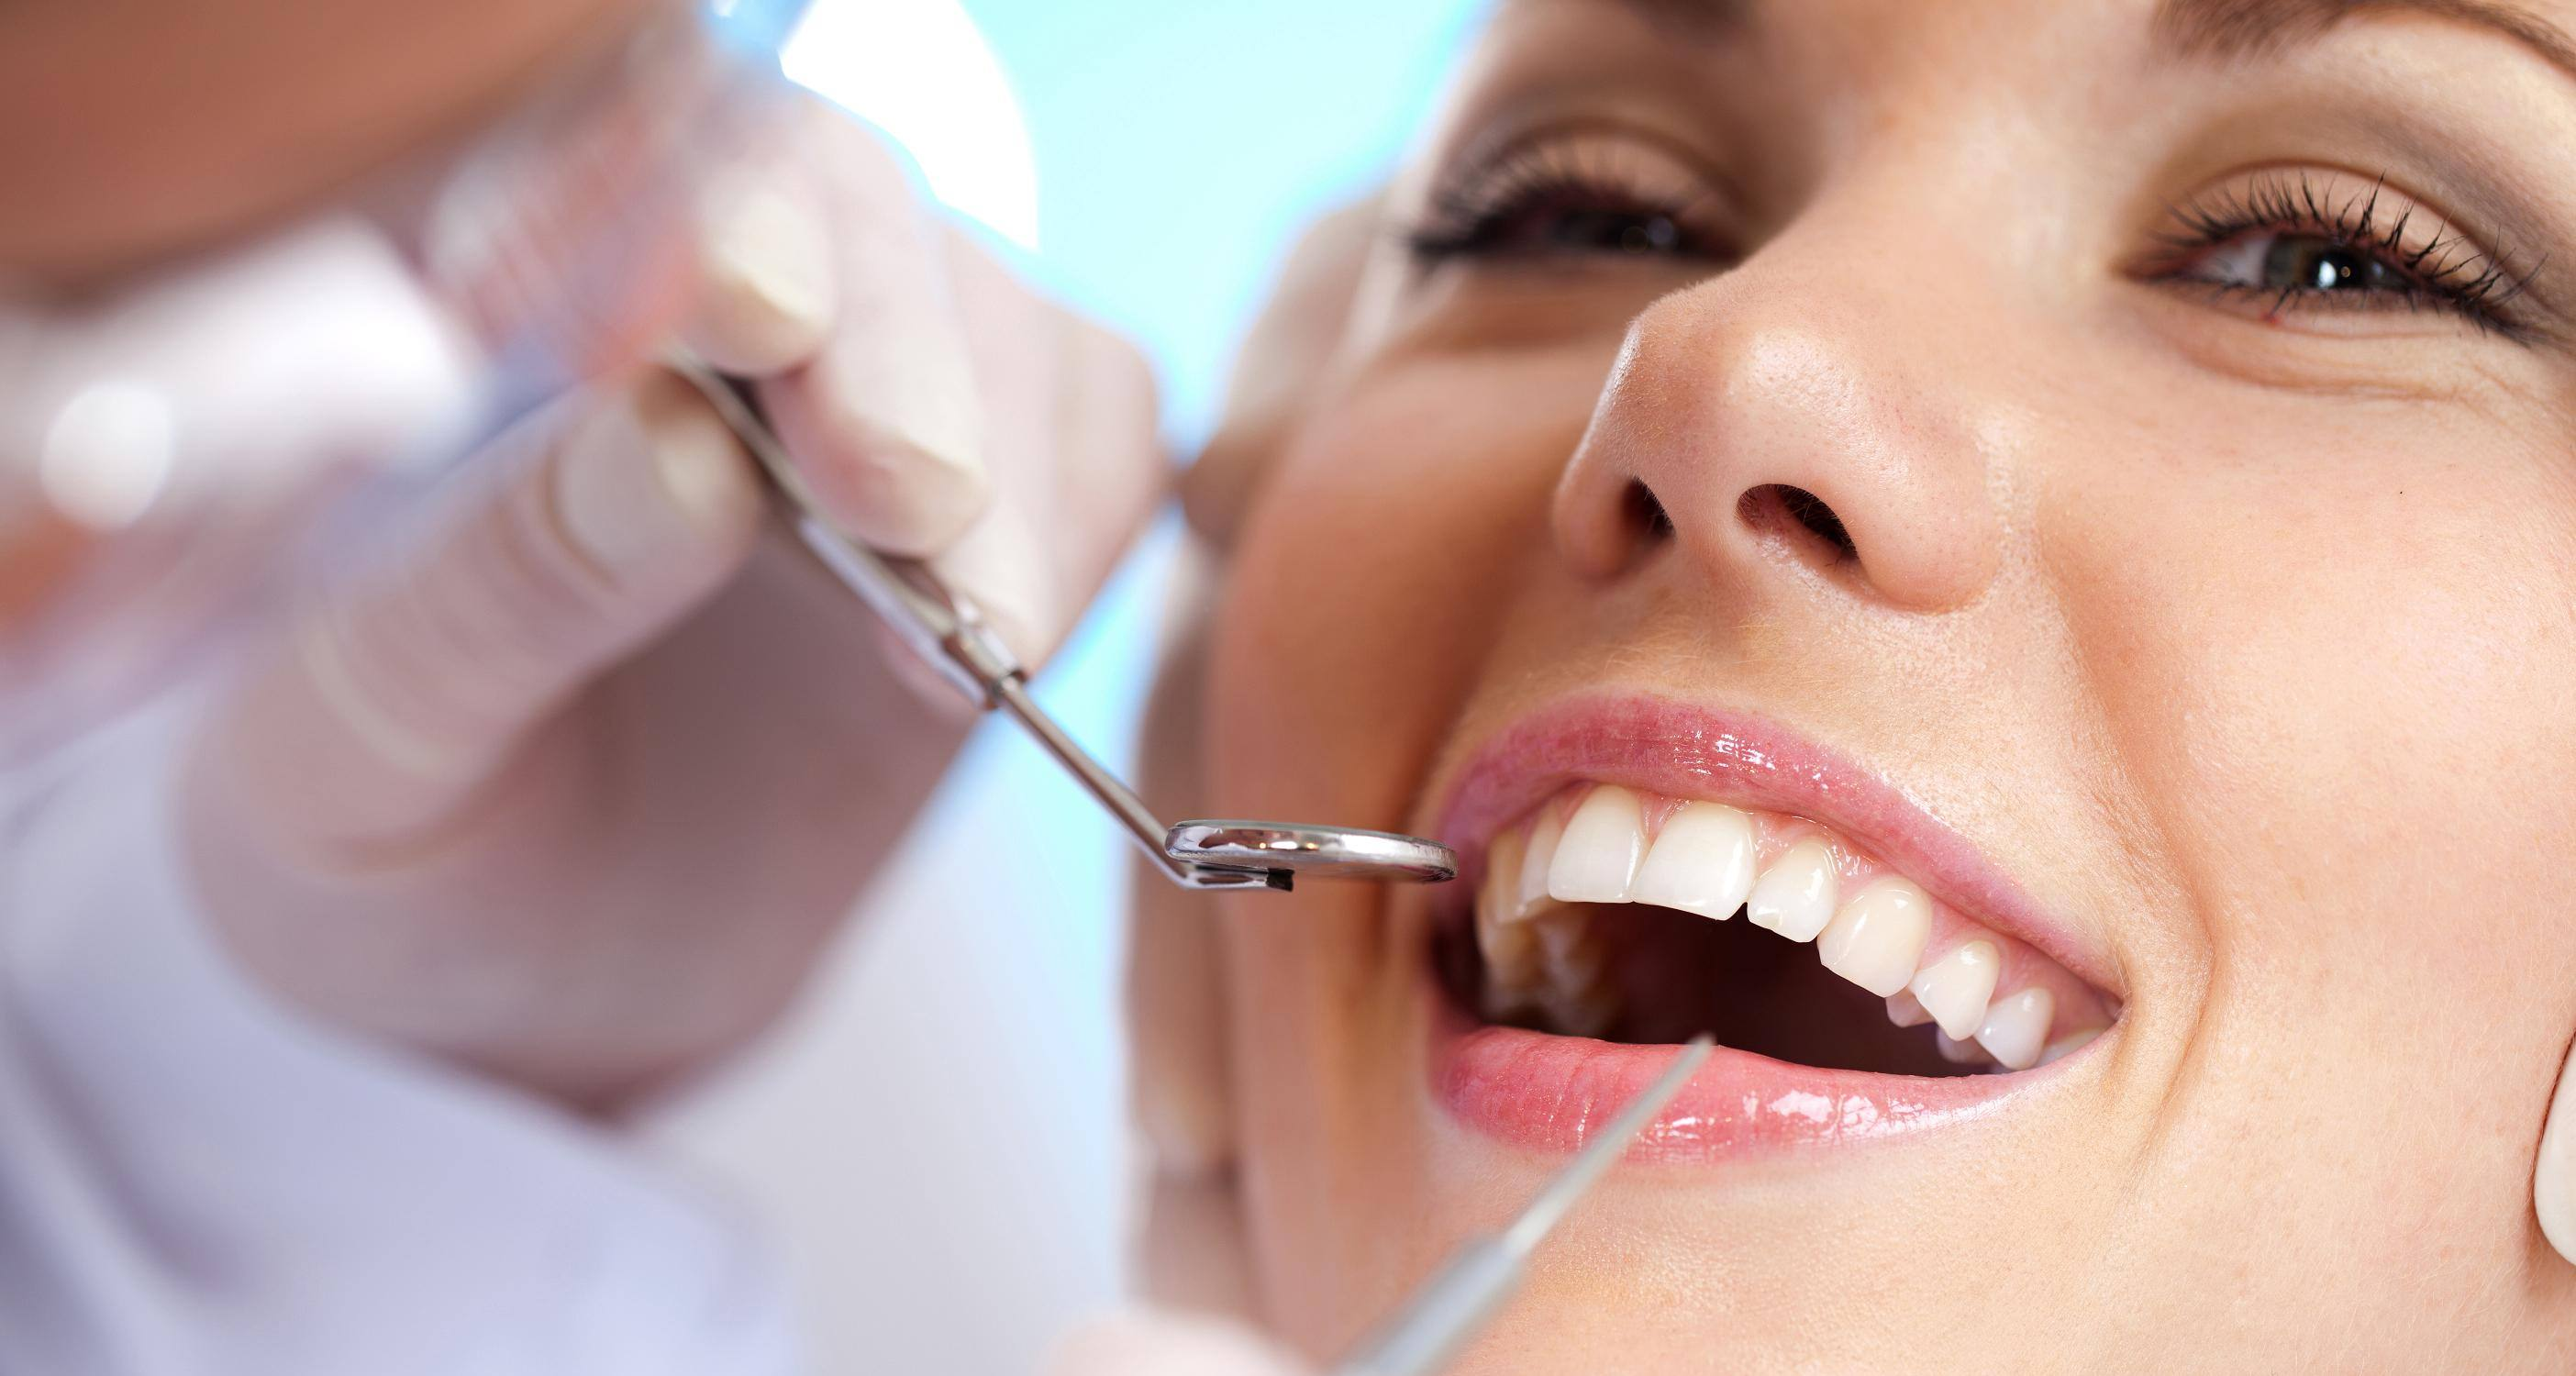 Contact An Emergency Dentist To Get Instant Relief From Your Agony